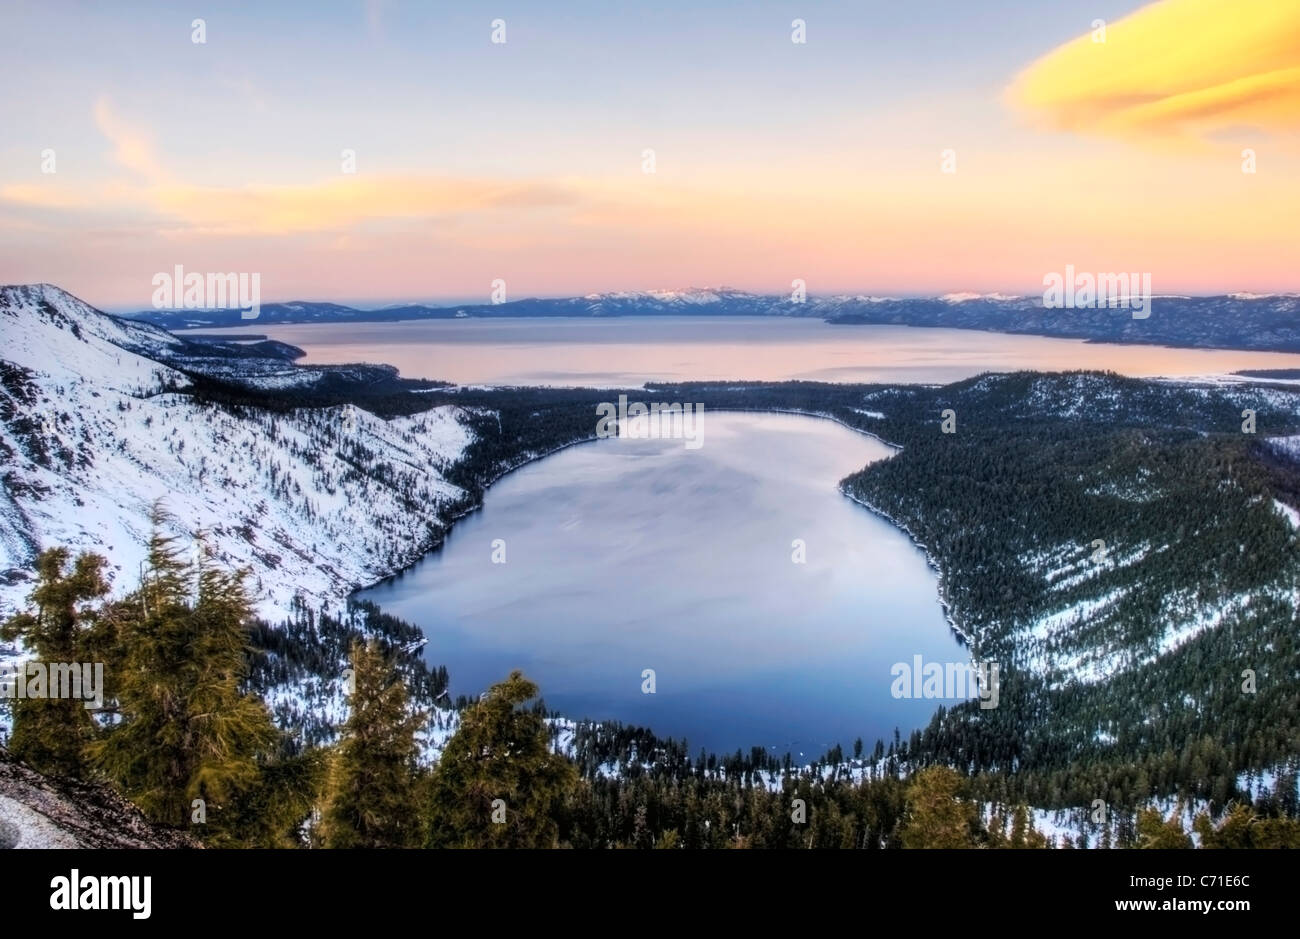 Fallen Leaf Lake and Lake Tahoe at sunset in the winter, California. - Stock Image